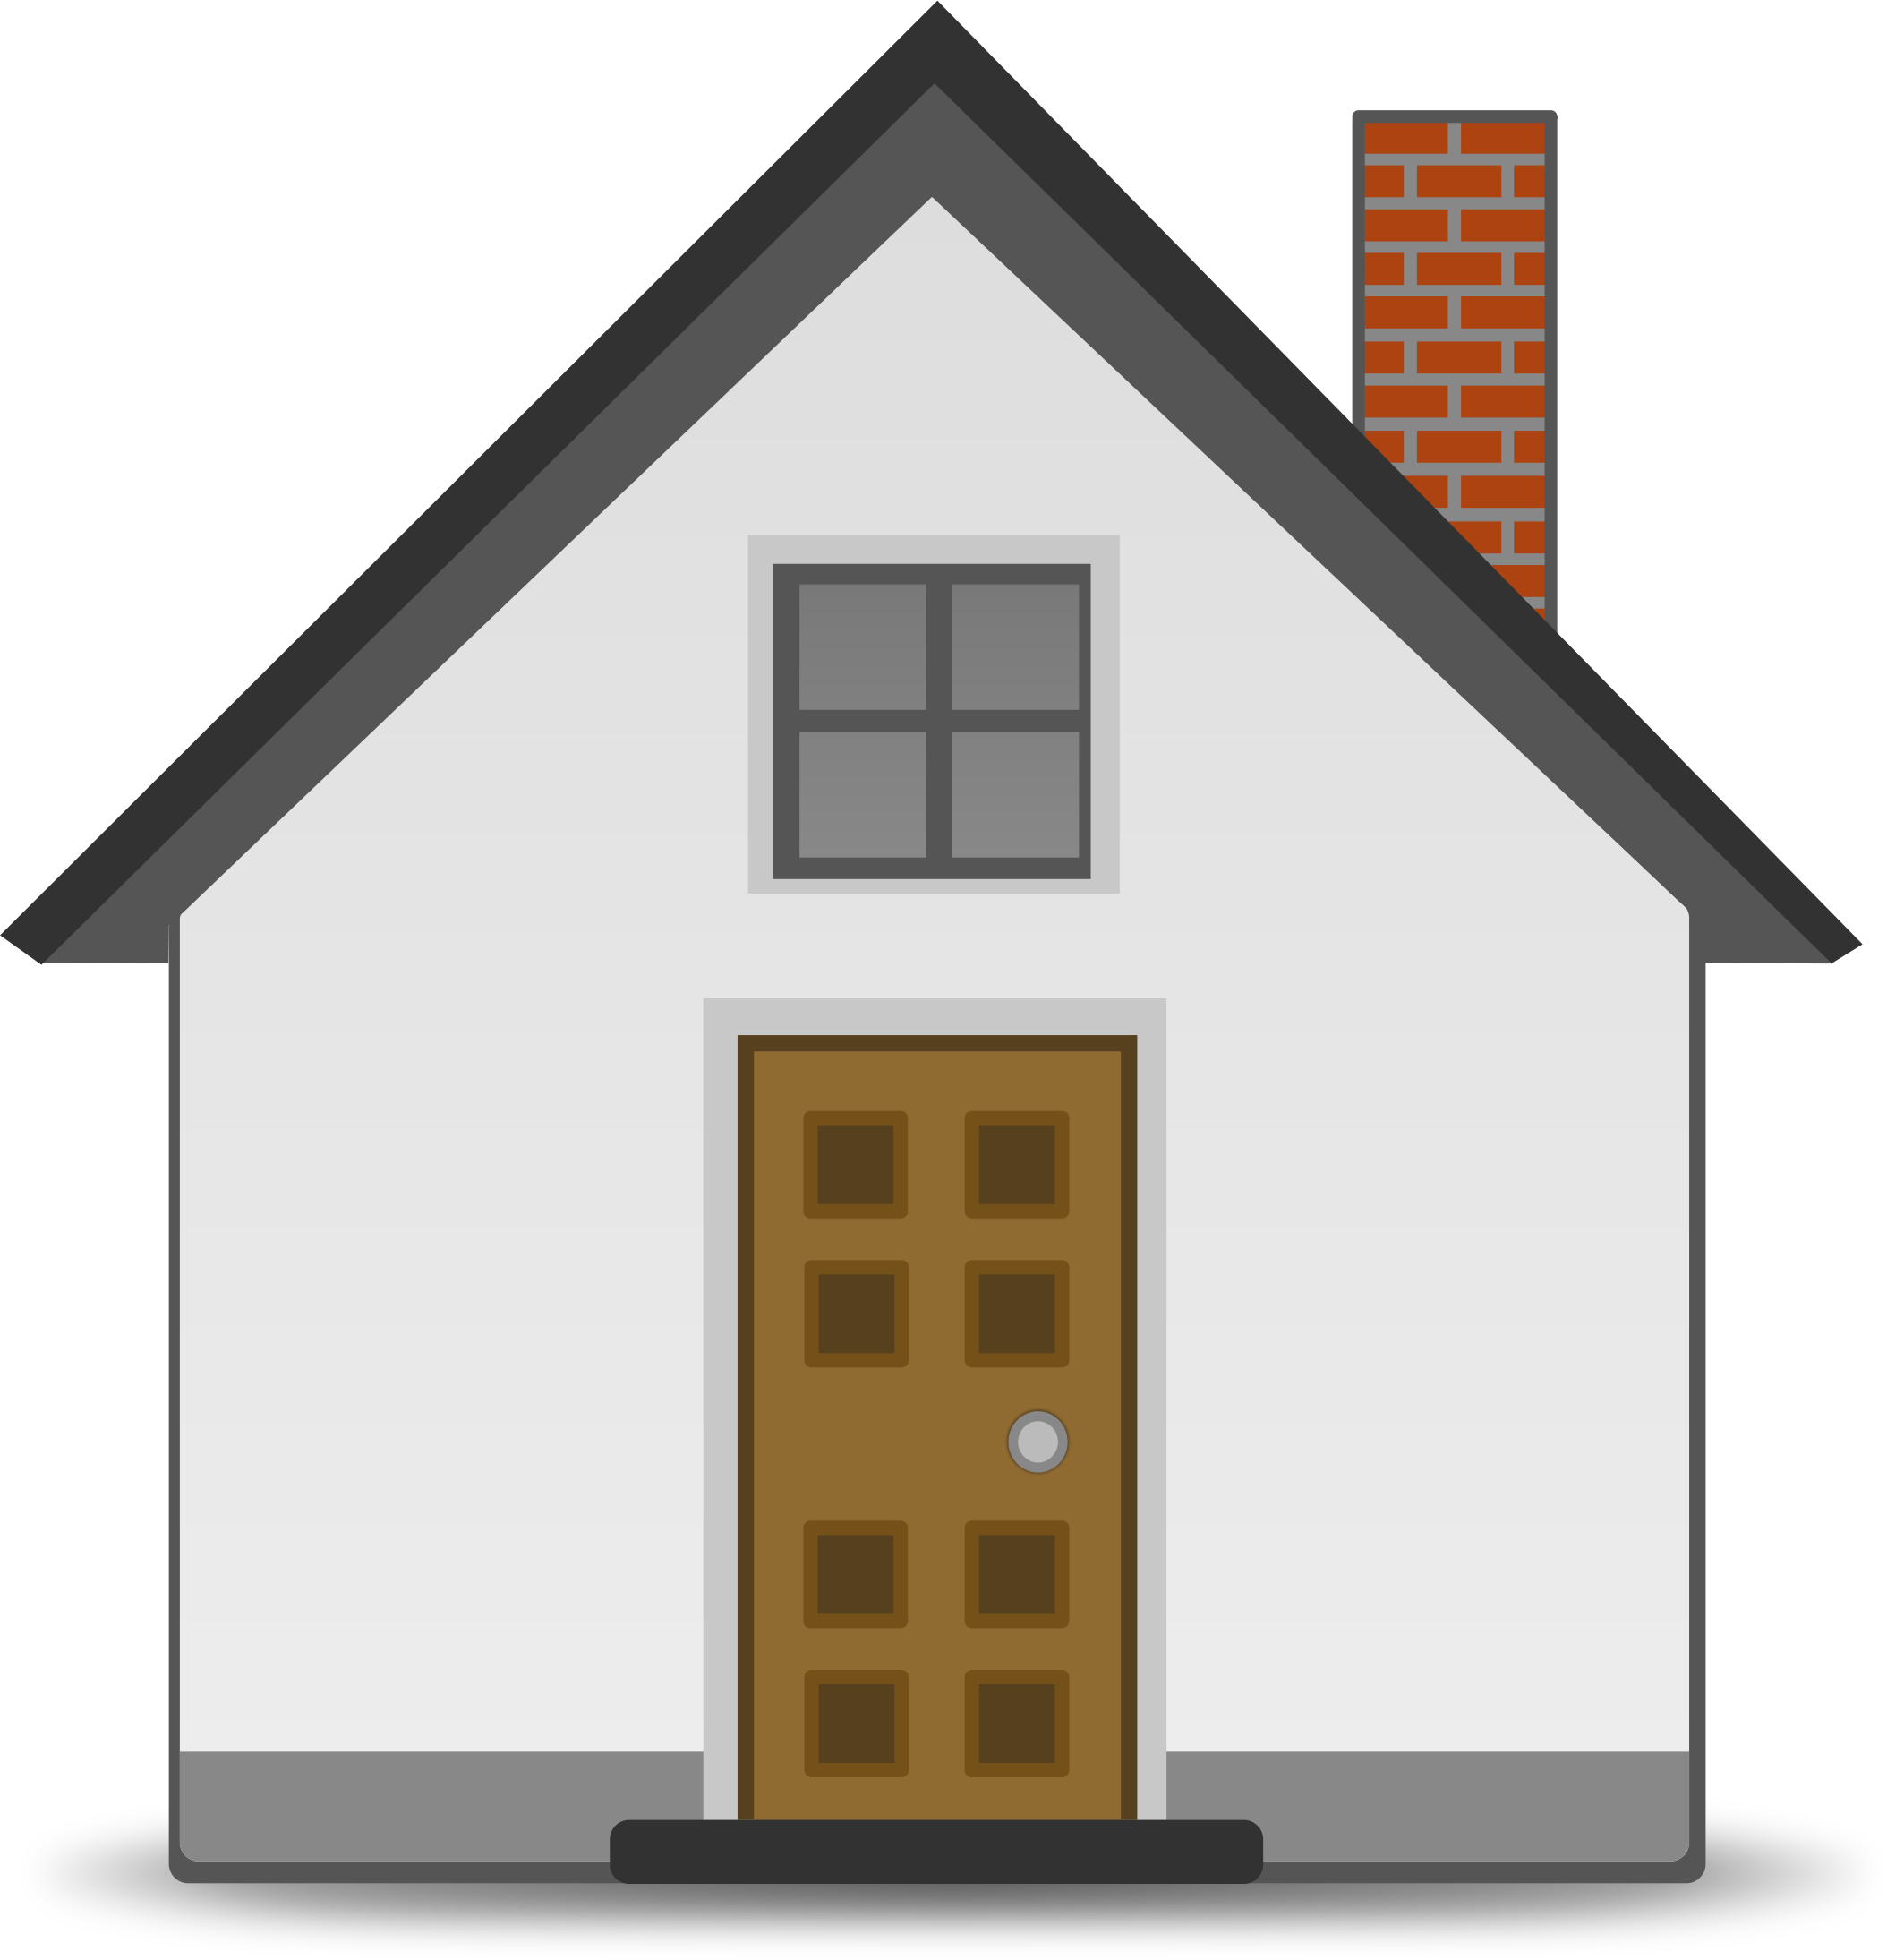 House Png - ClipArt Best House Graphic Png